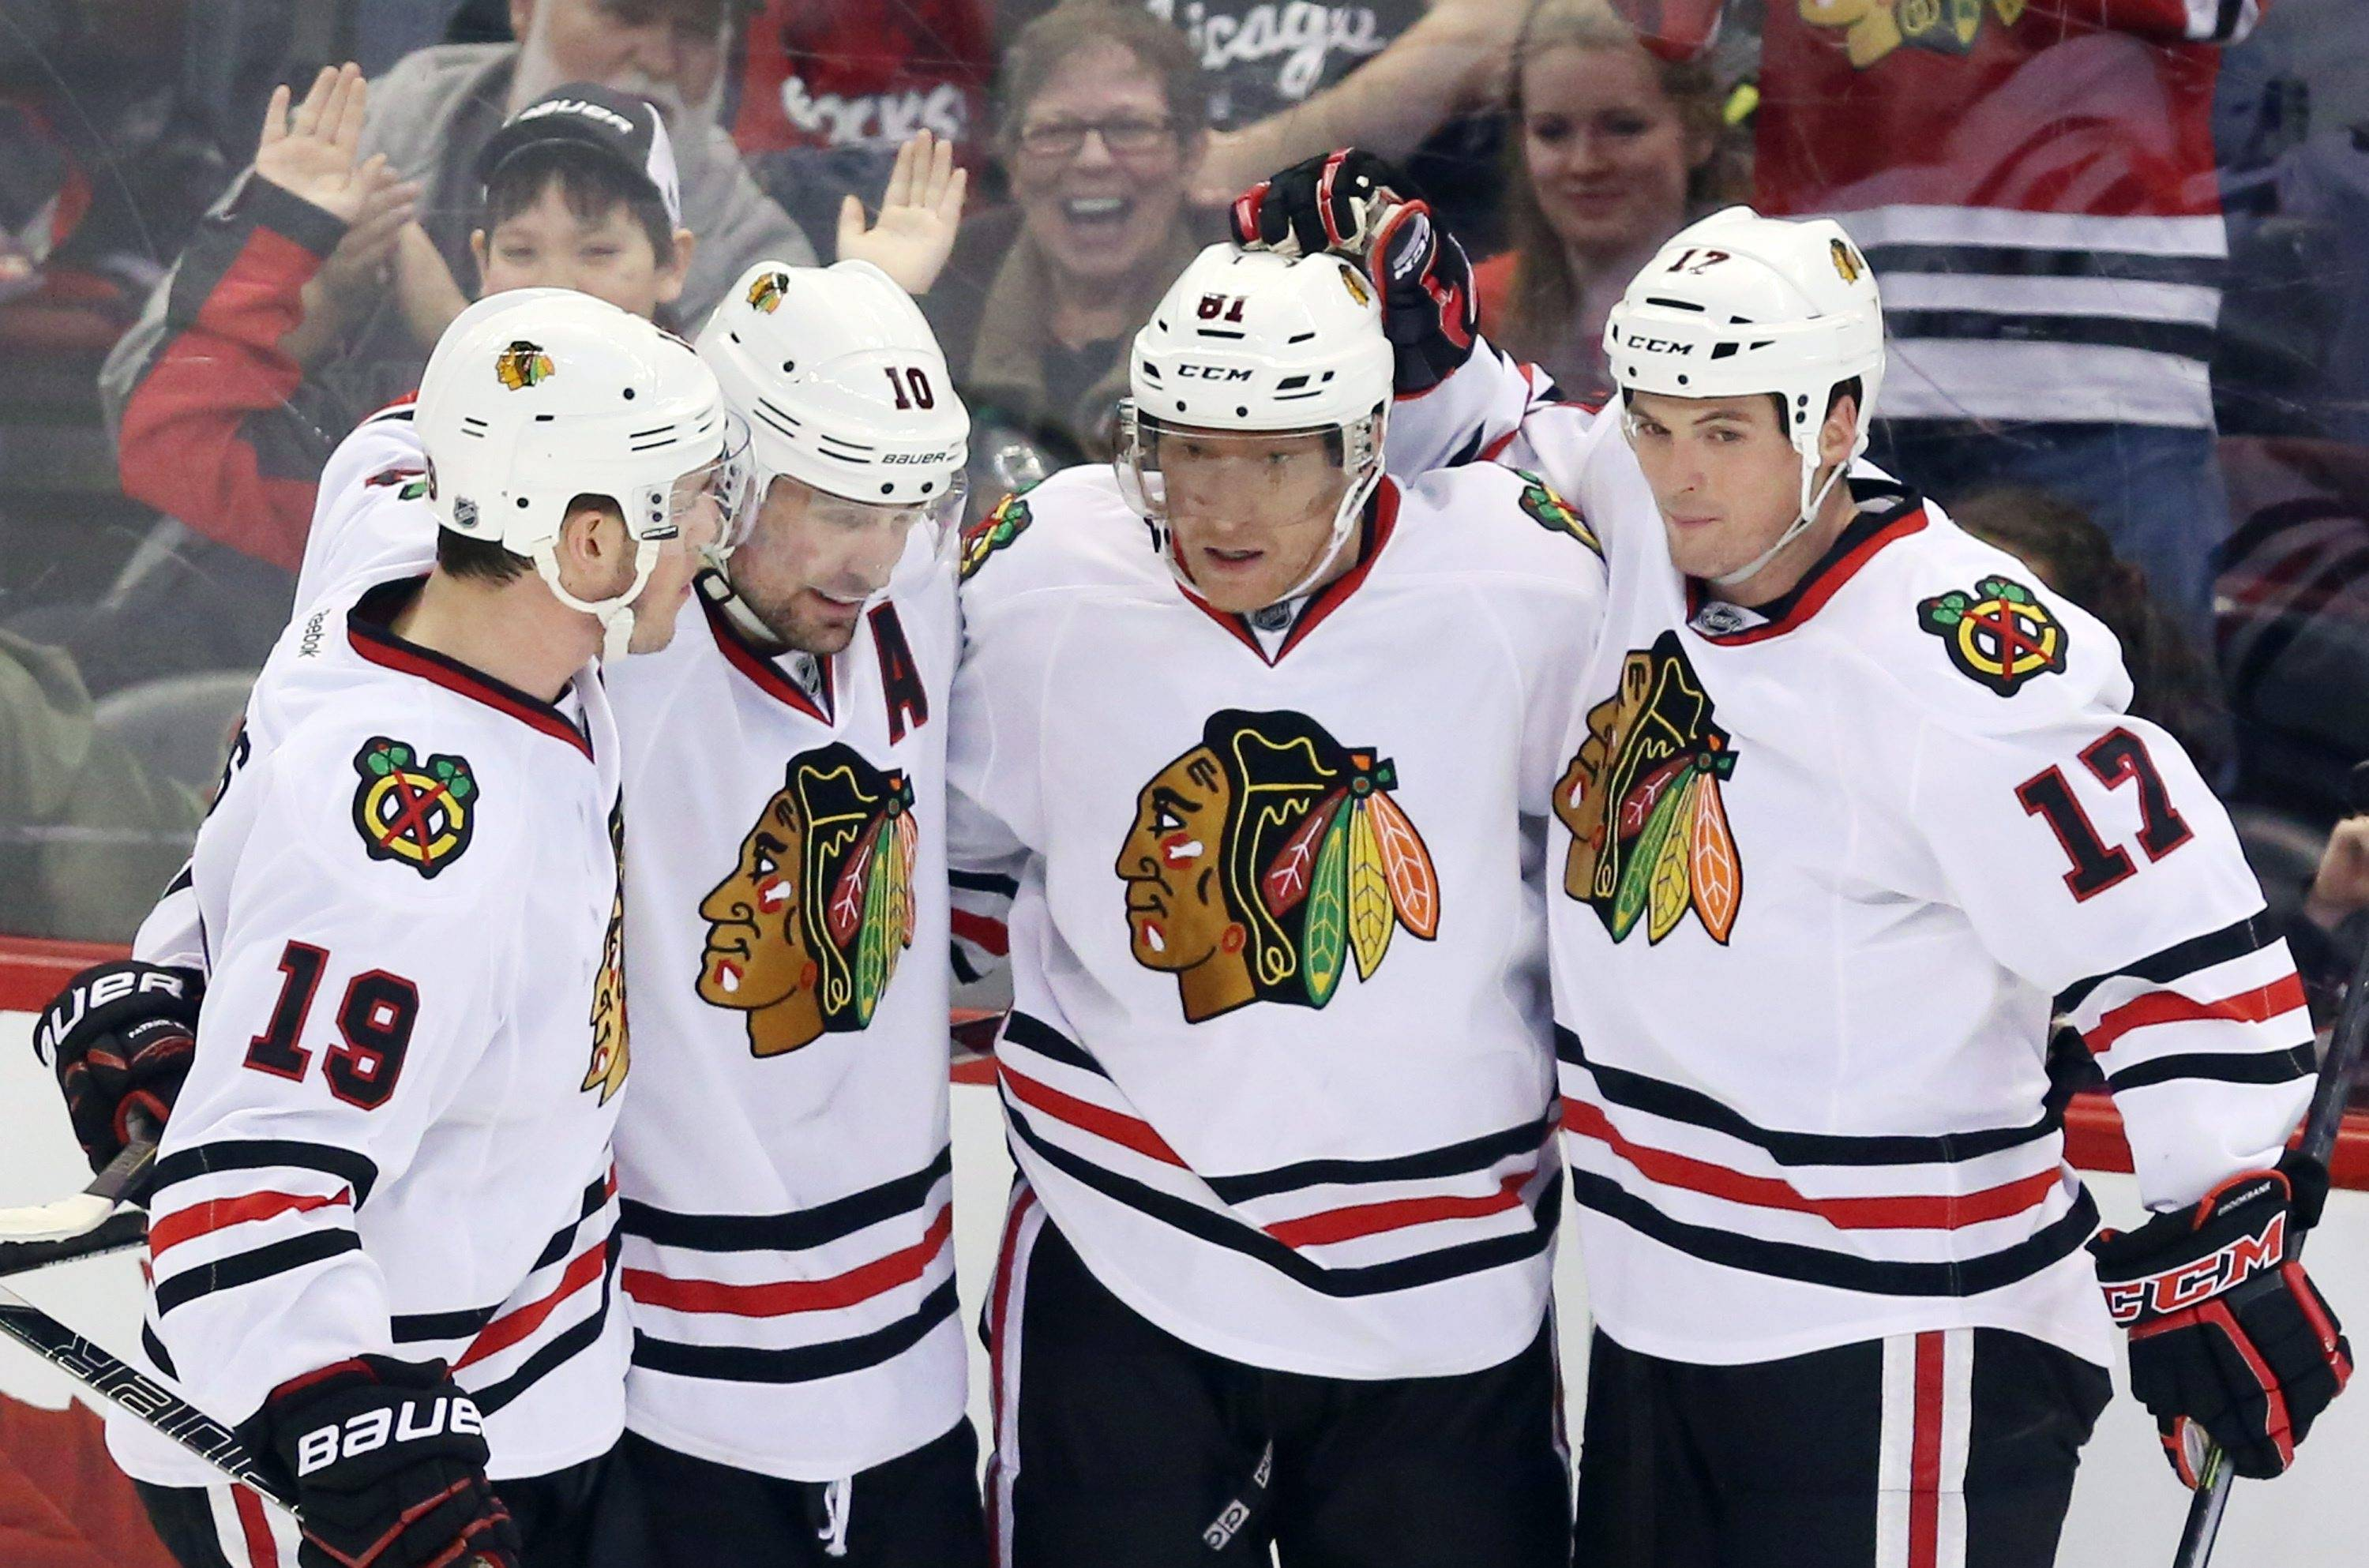 The Blackhawks' Marian Hossa (81) celebrates his goal with teammates Jonathan Toews (19), Patrick Sharp (10) and Sheldon Brookbank (17) during second-period action Friday against the Ottawa Senators in Ottawa, Ontario.